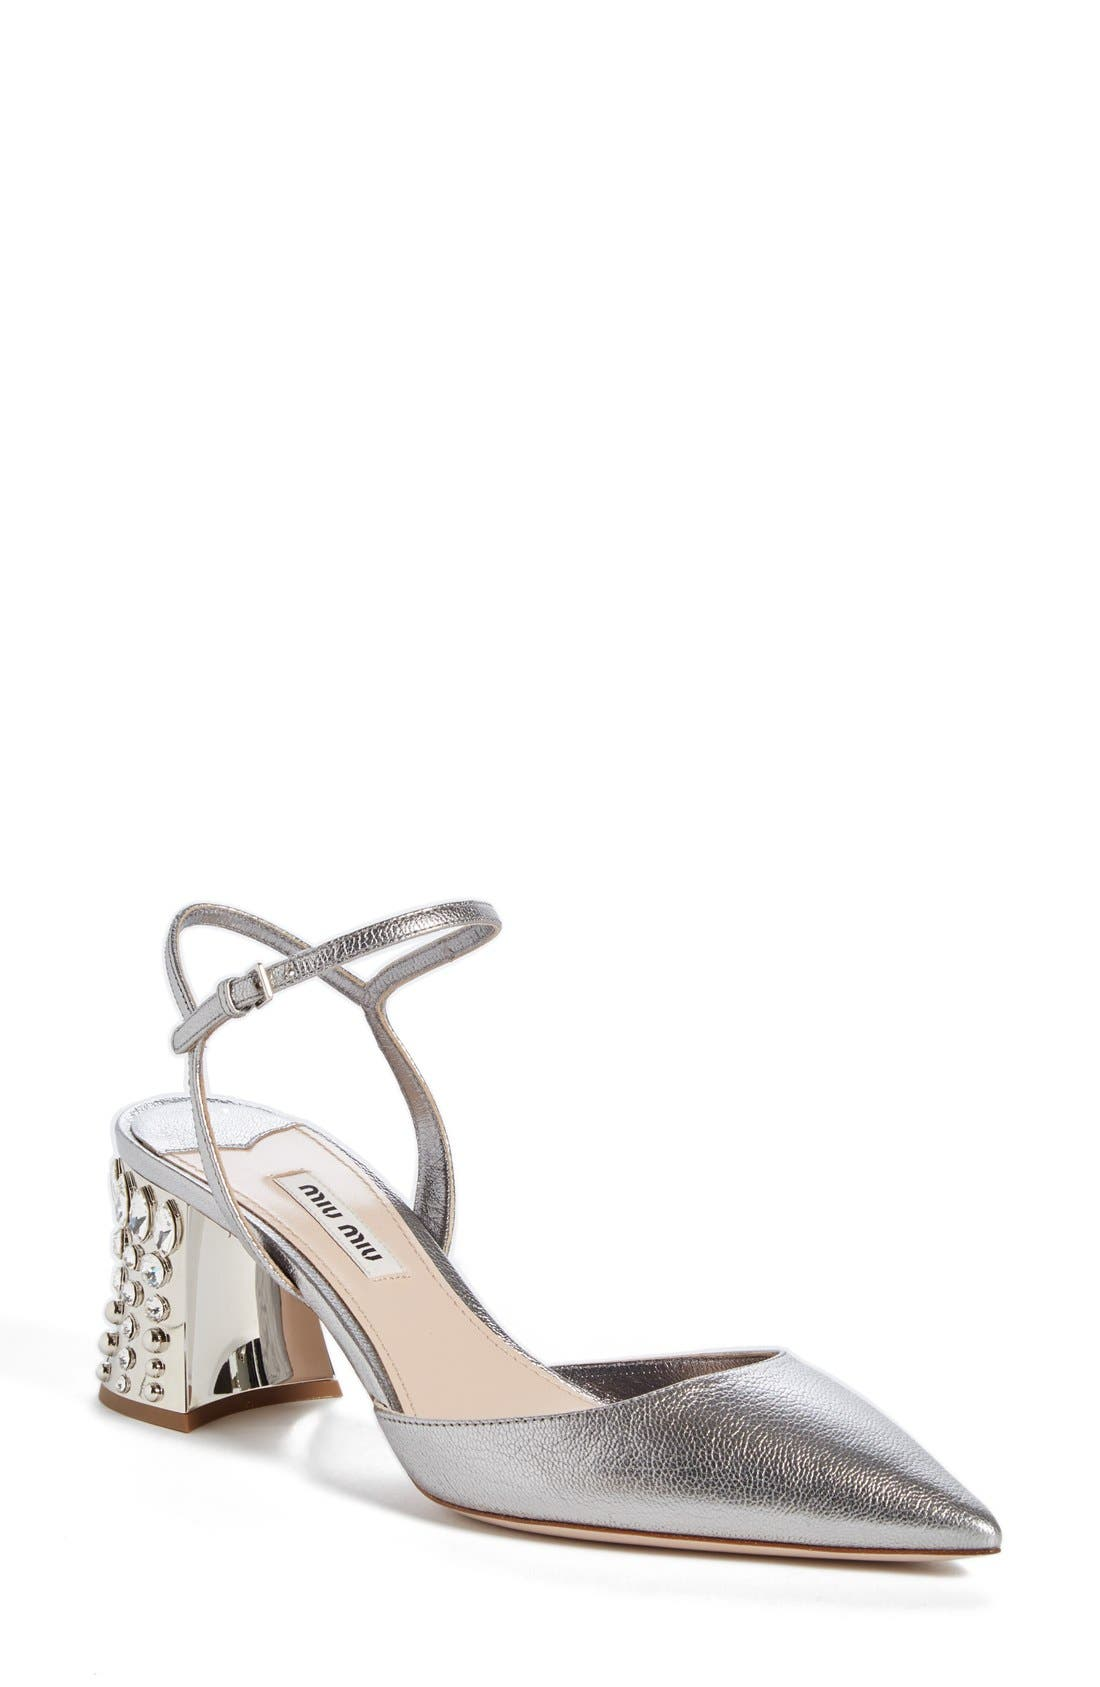 Jeweled Heel Ankle Strap Pump,                         Main,                         color, 043